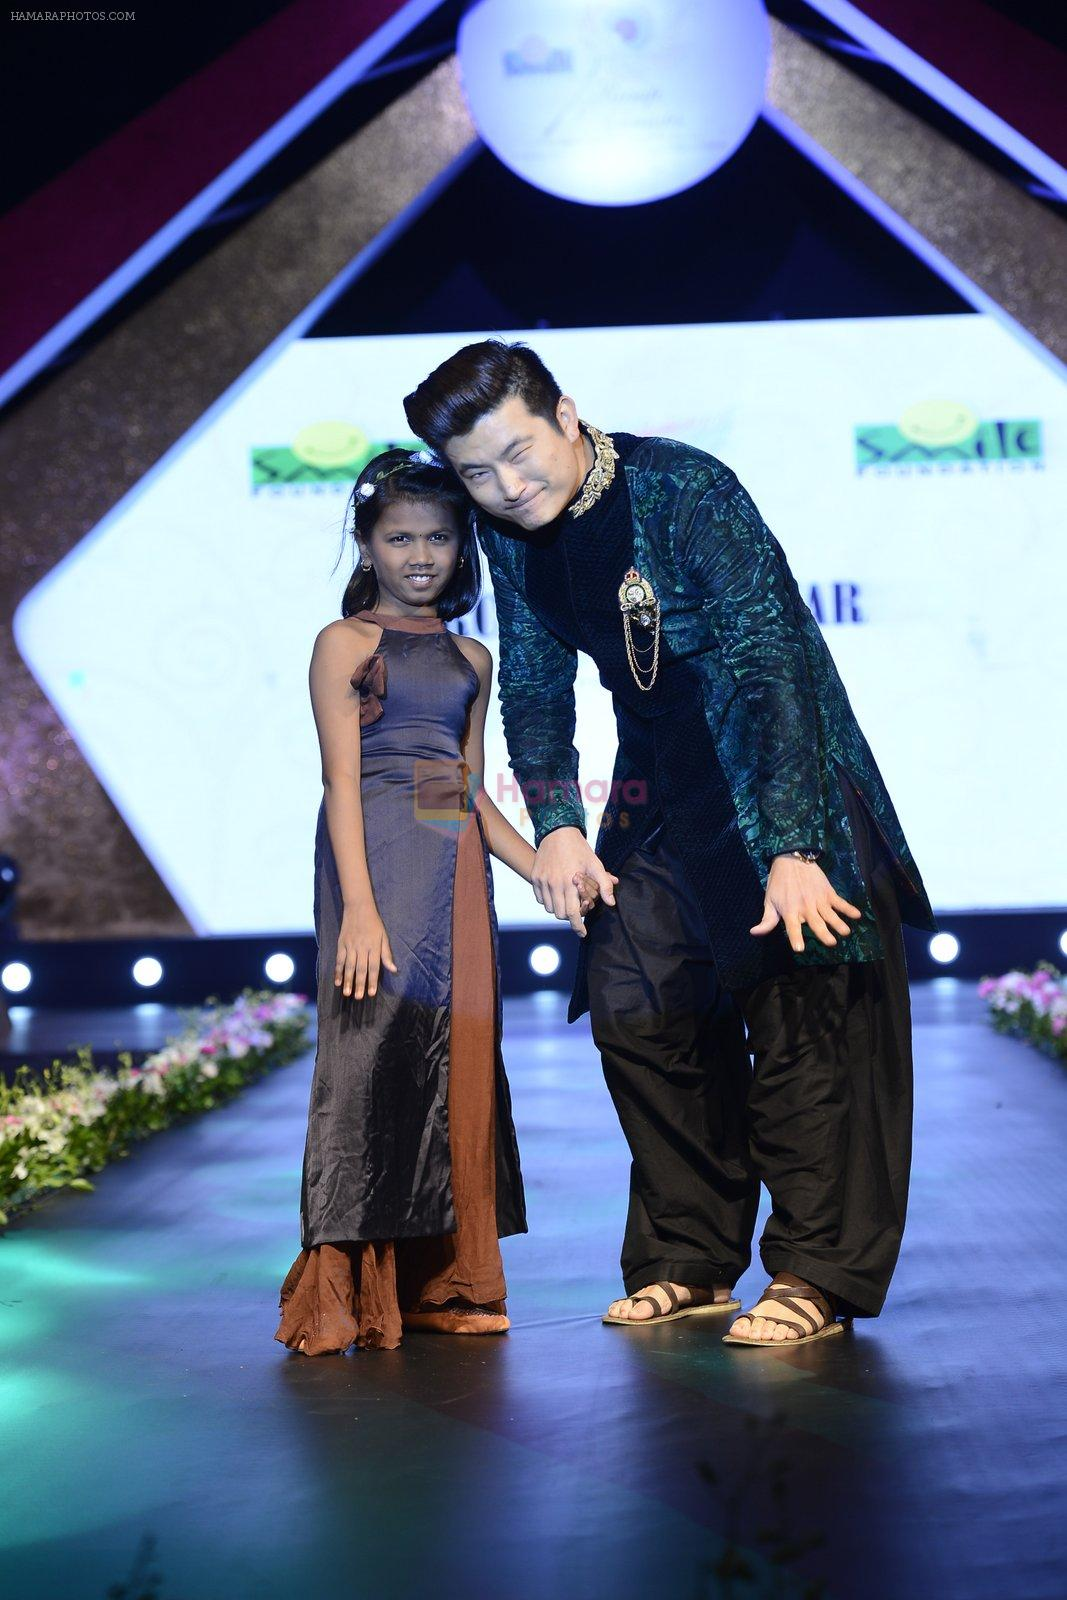 Meiyang Chang at Smile Foundation charity fashion show on 13th Oct 2016